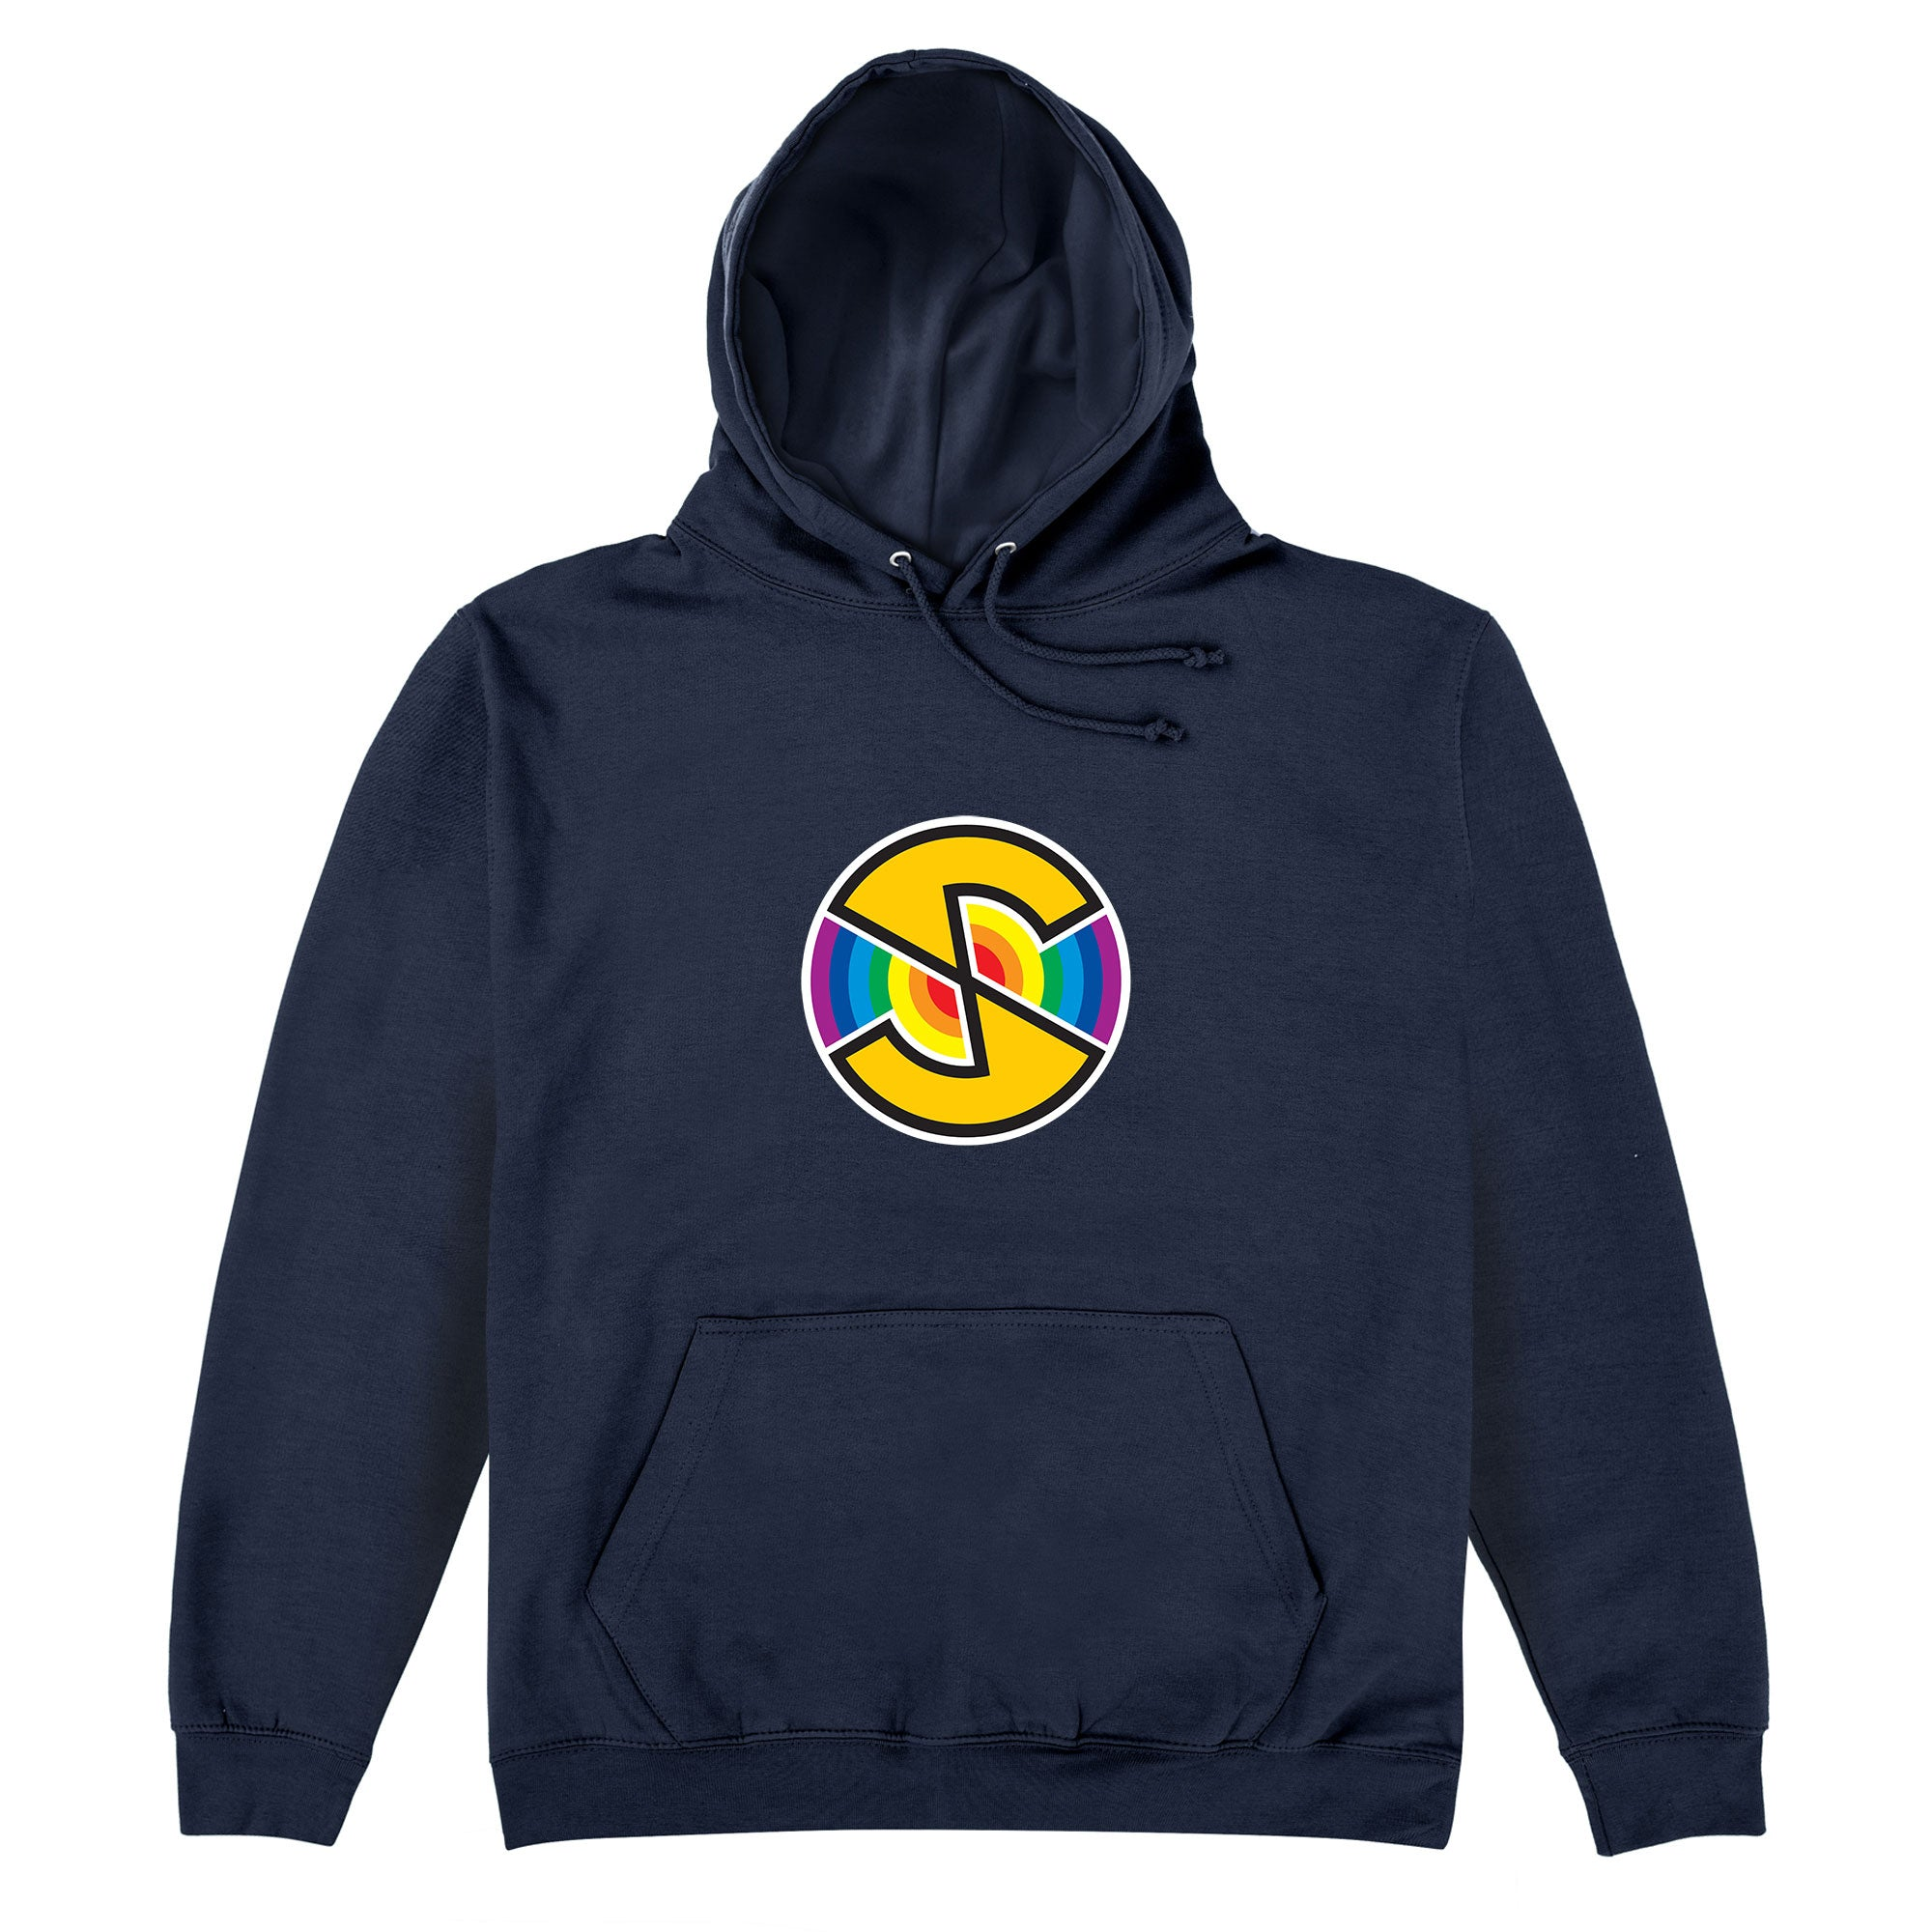 Captain Scarlet Spectrum Logo Hoodie [Official & Exclusive] - The Gerry Anderson Store